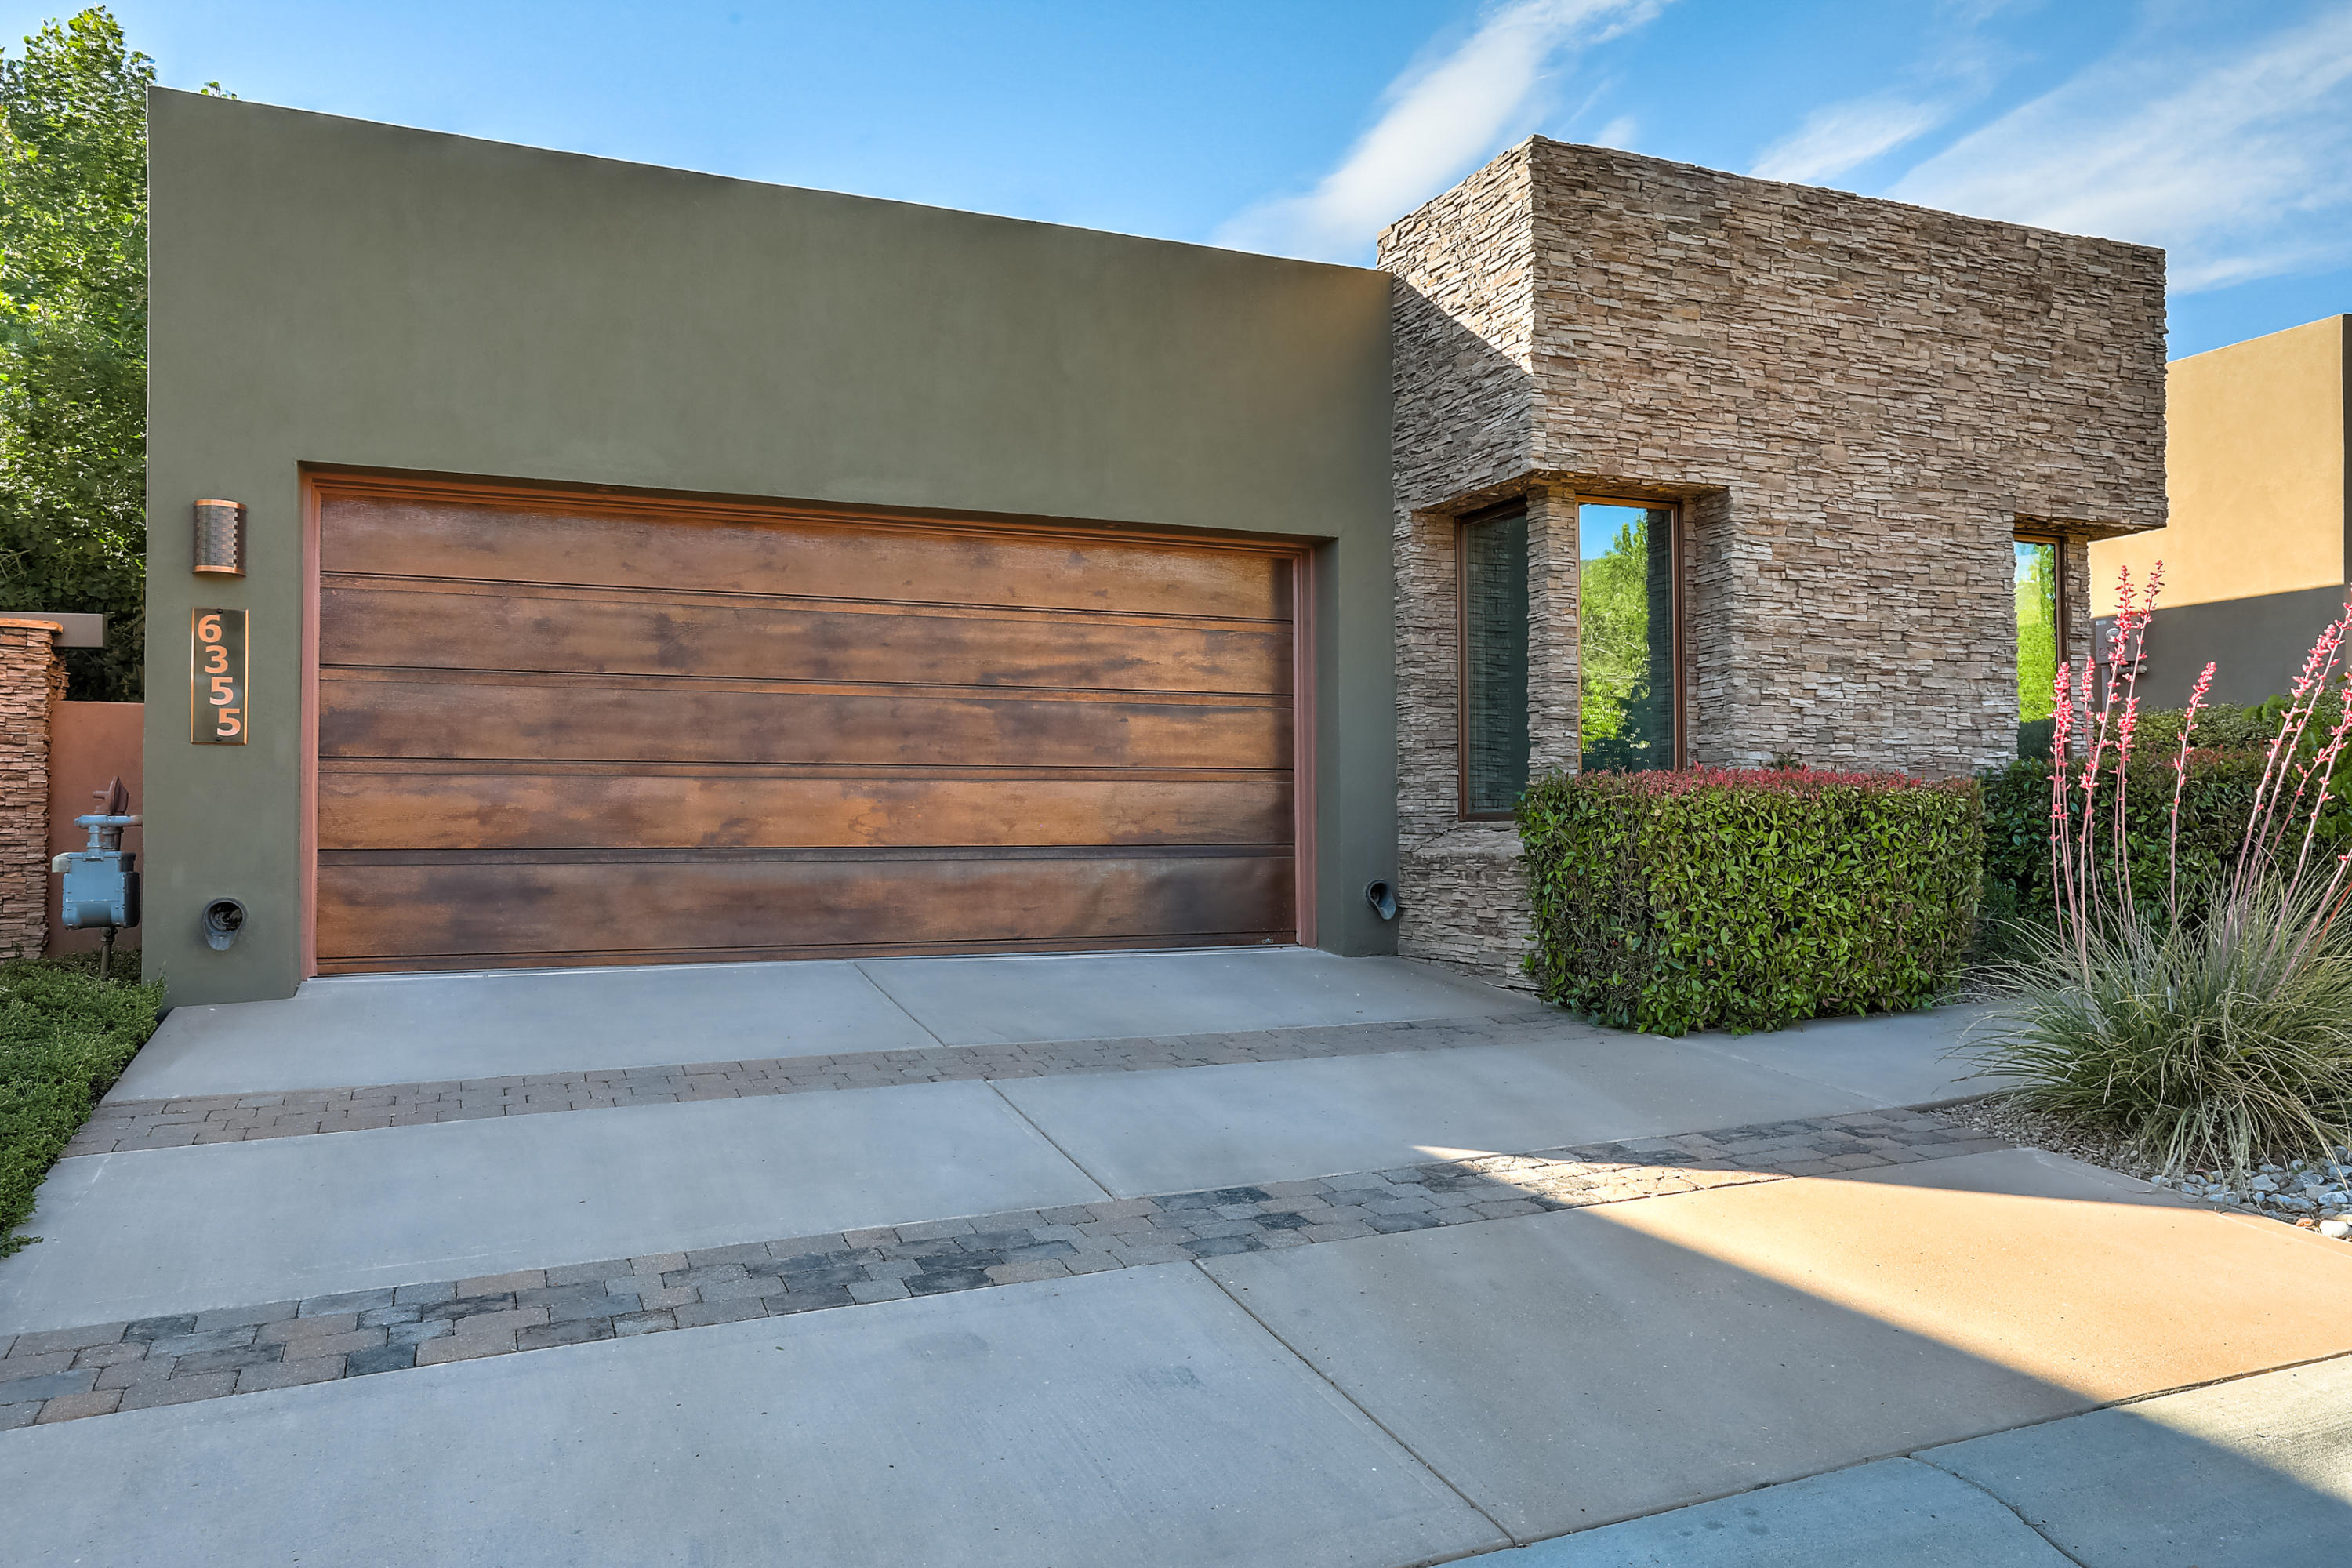 6355 CLIFFBRUSH Lane NE, Albuquerque, NM 87111 - Albuquerque, NM real estate listing